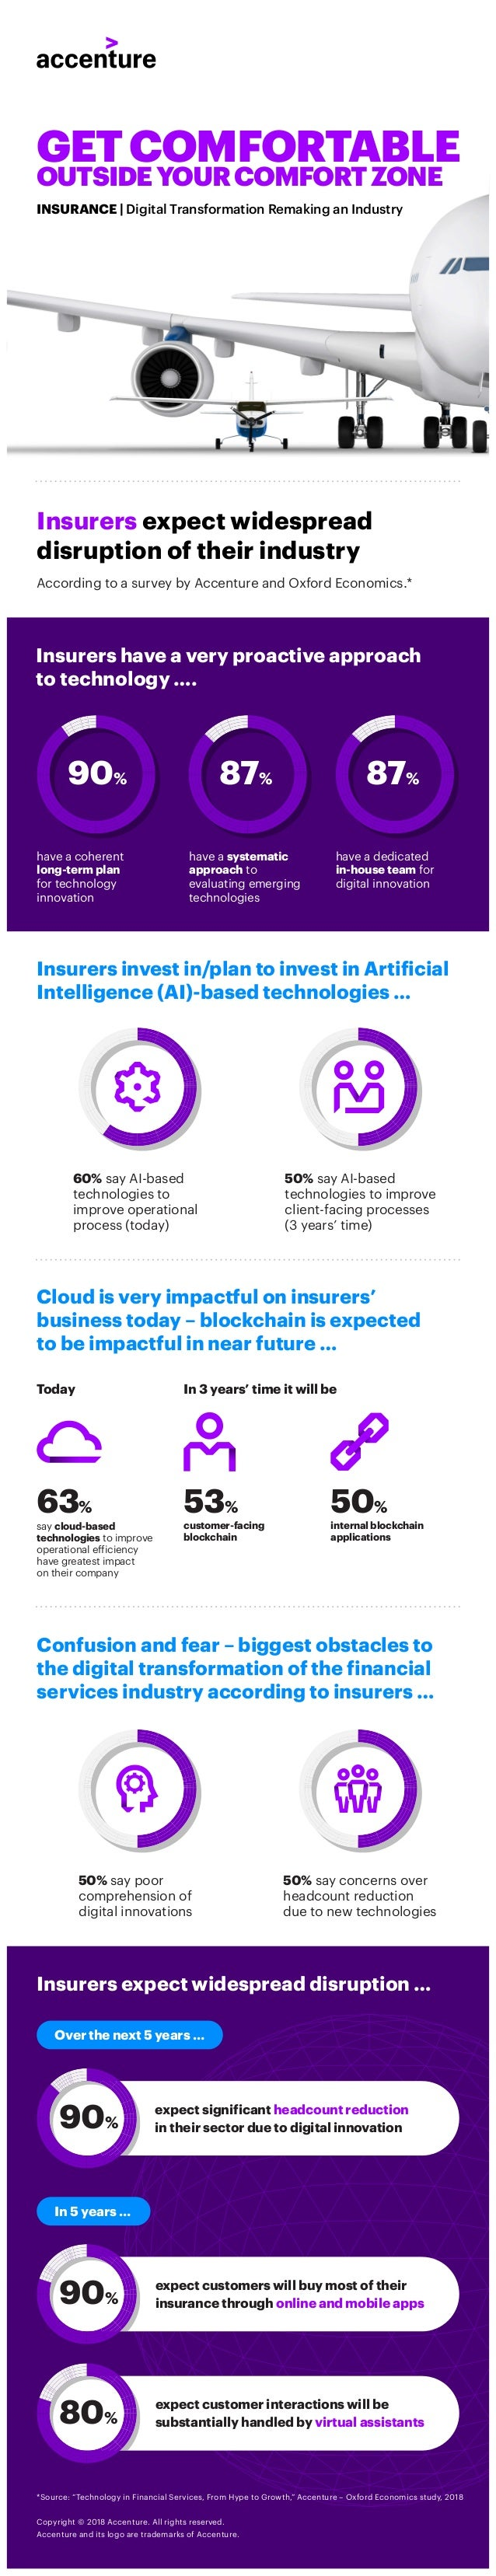 Insurers expect widespread disruption of their industry 60% say AI-based technologies to improve operational process (toda...